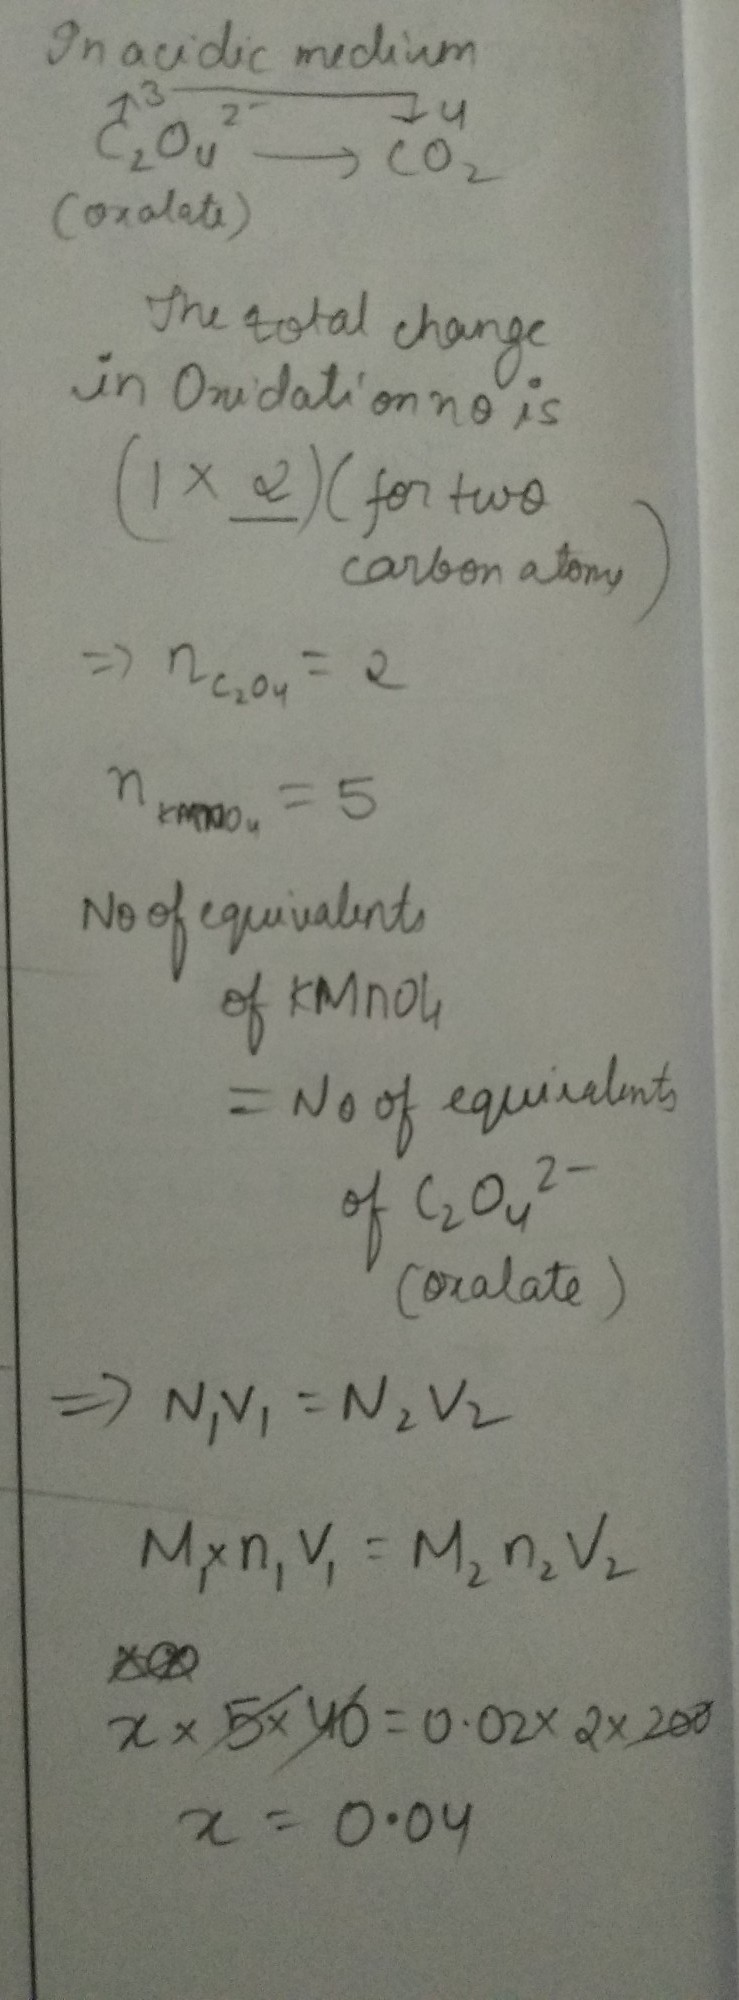 40 ml of x M KMnO4 solution is required to react completely with 200